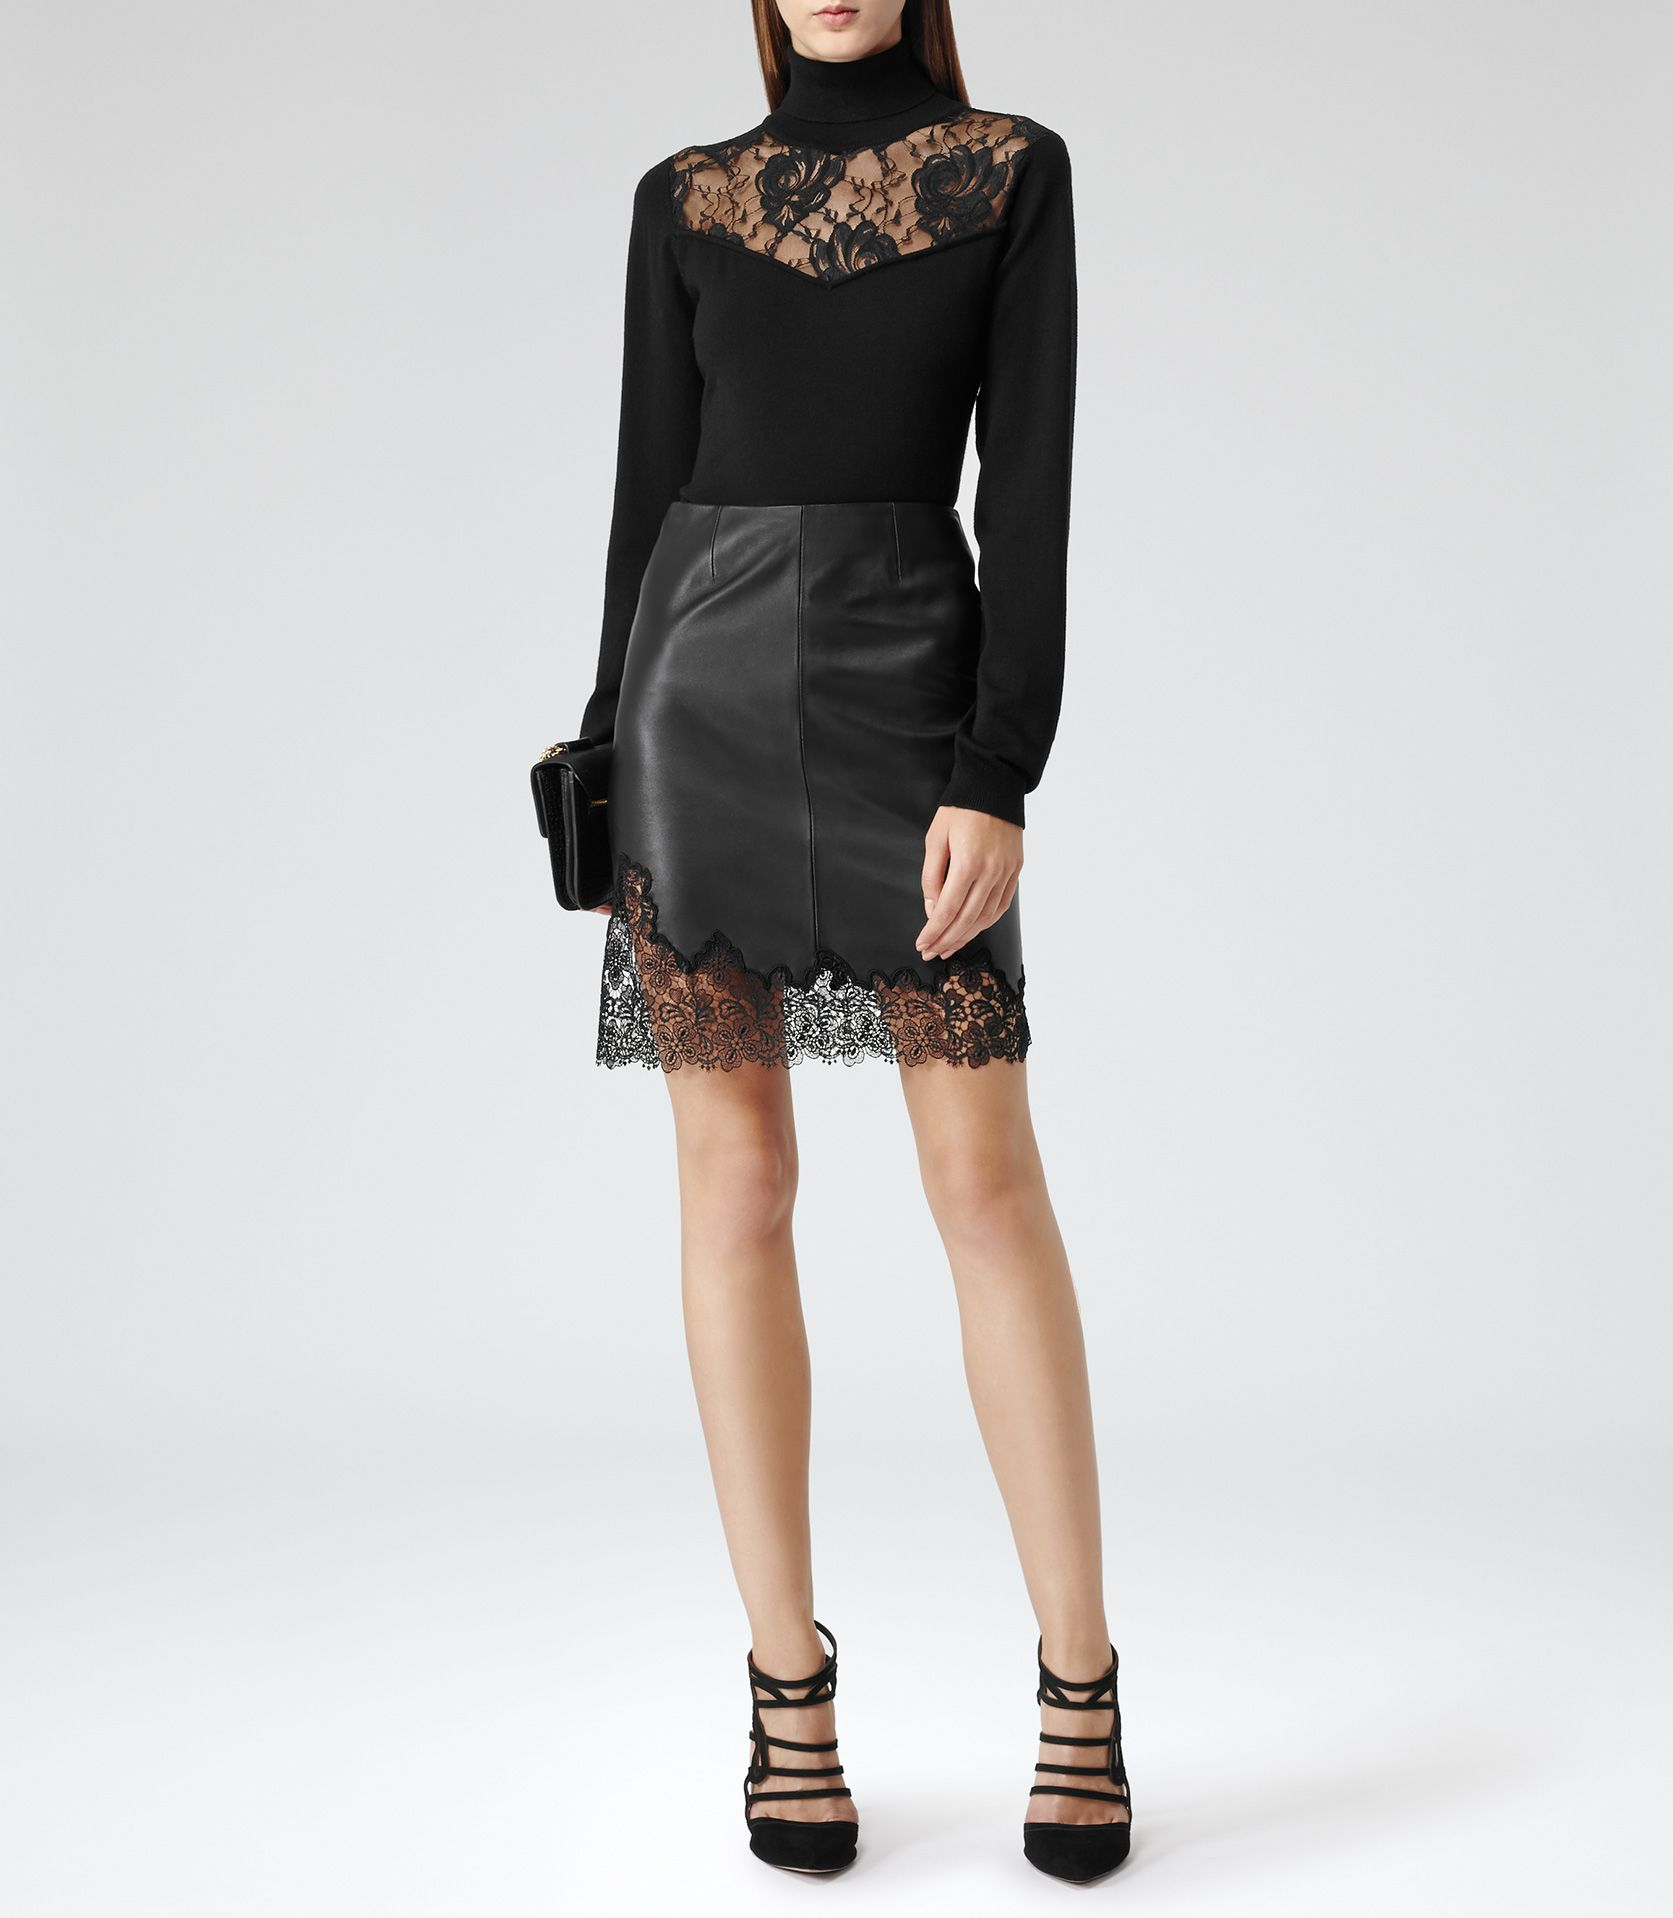 Reiss Lana Women's Black Lace Trim Leather Skirt | My Style ...